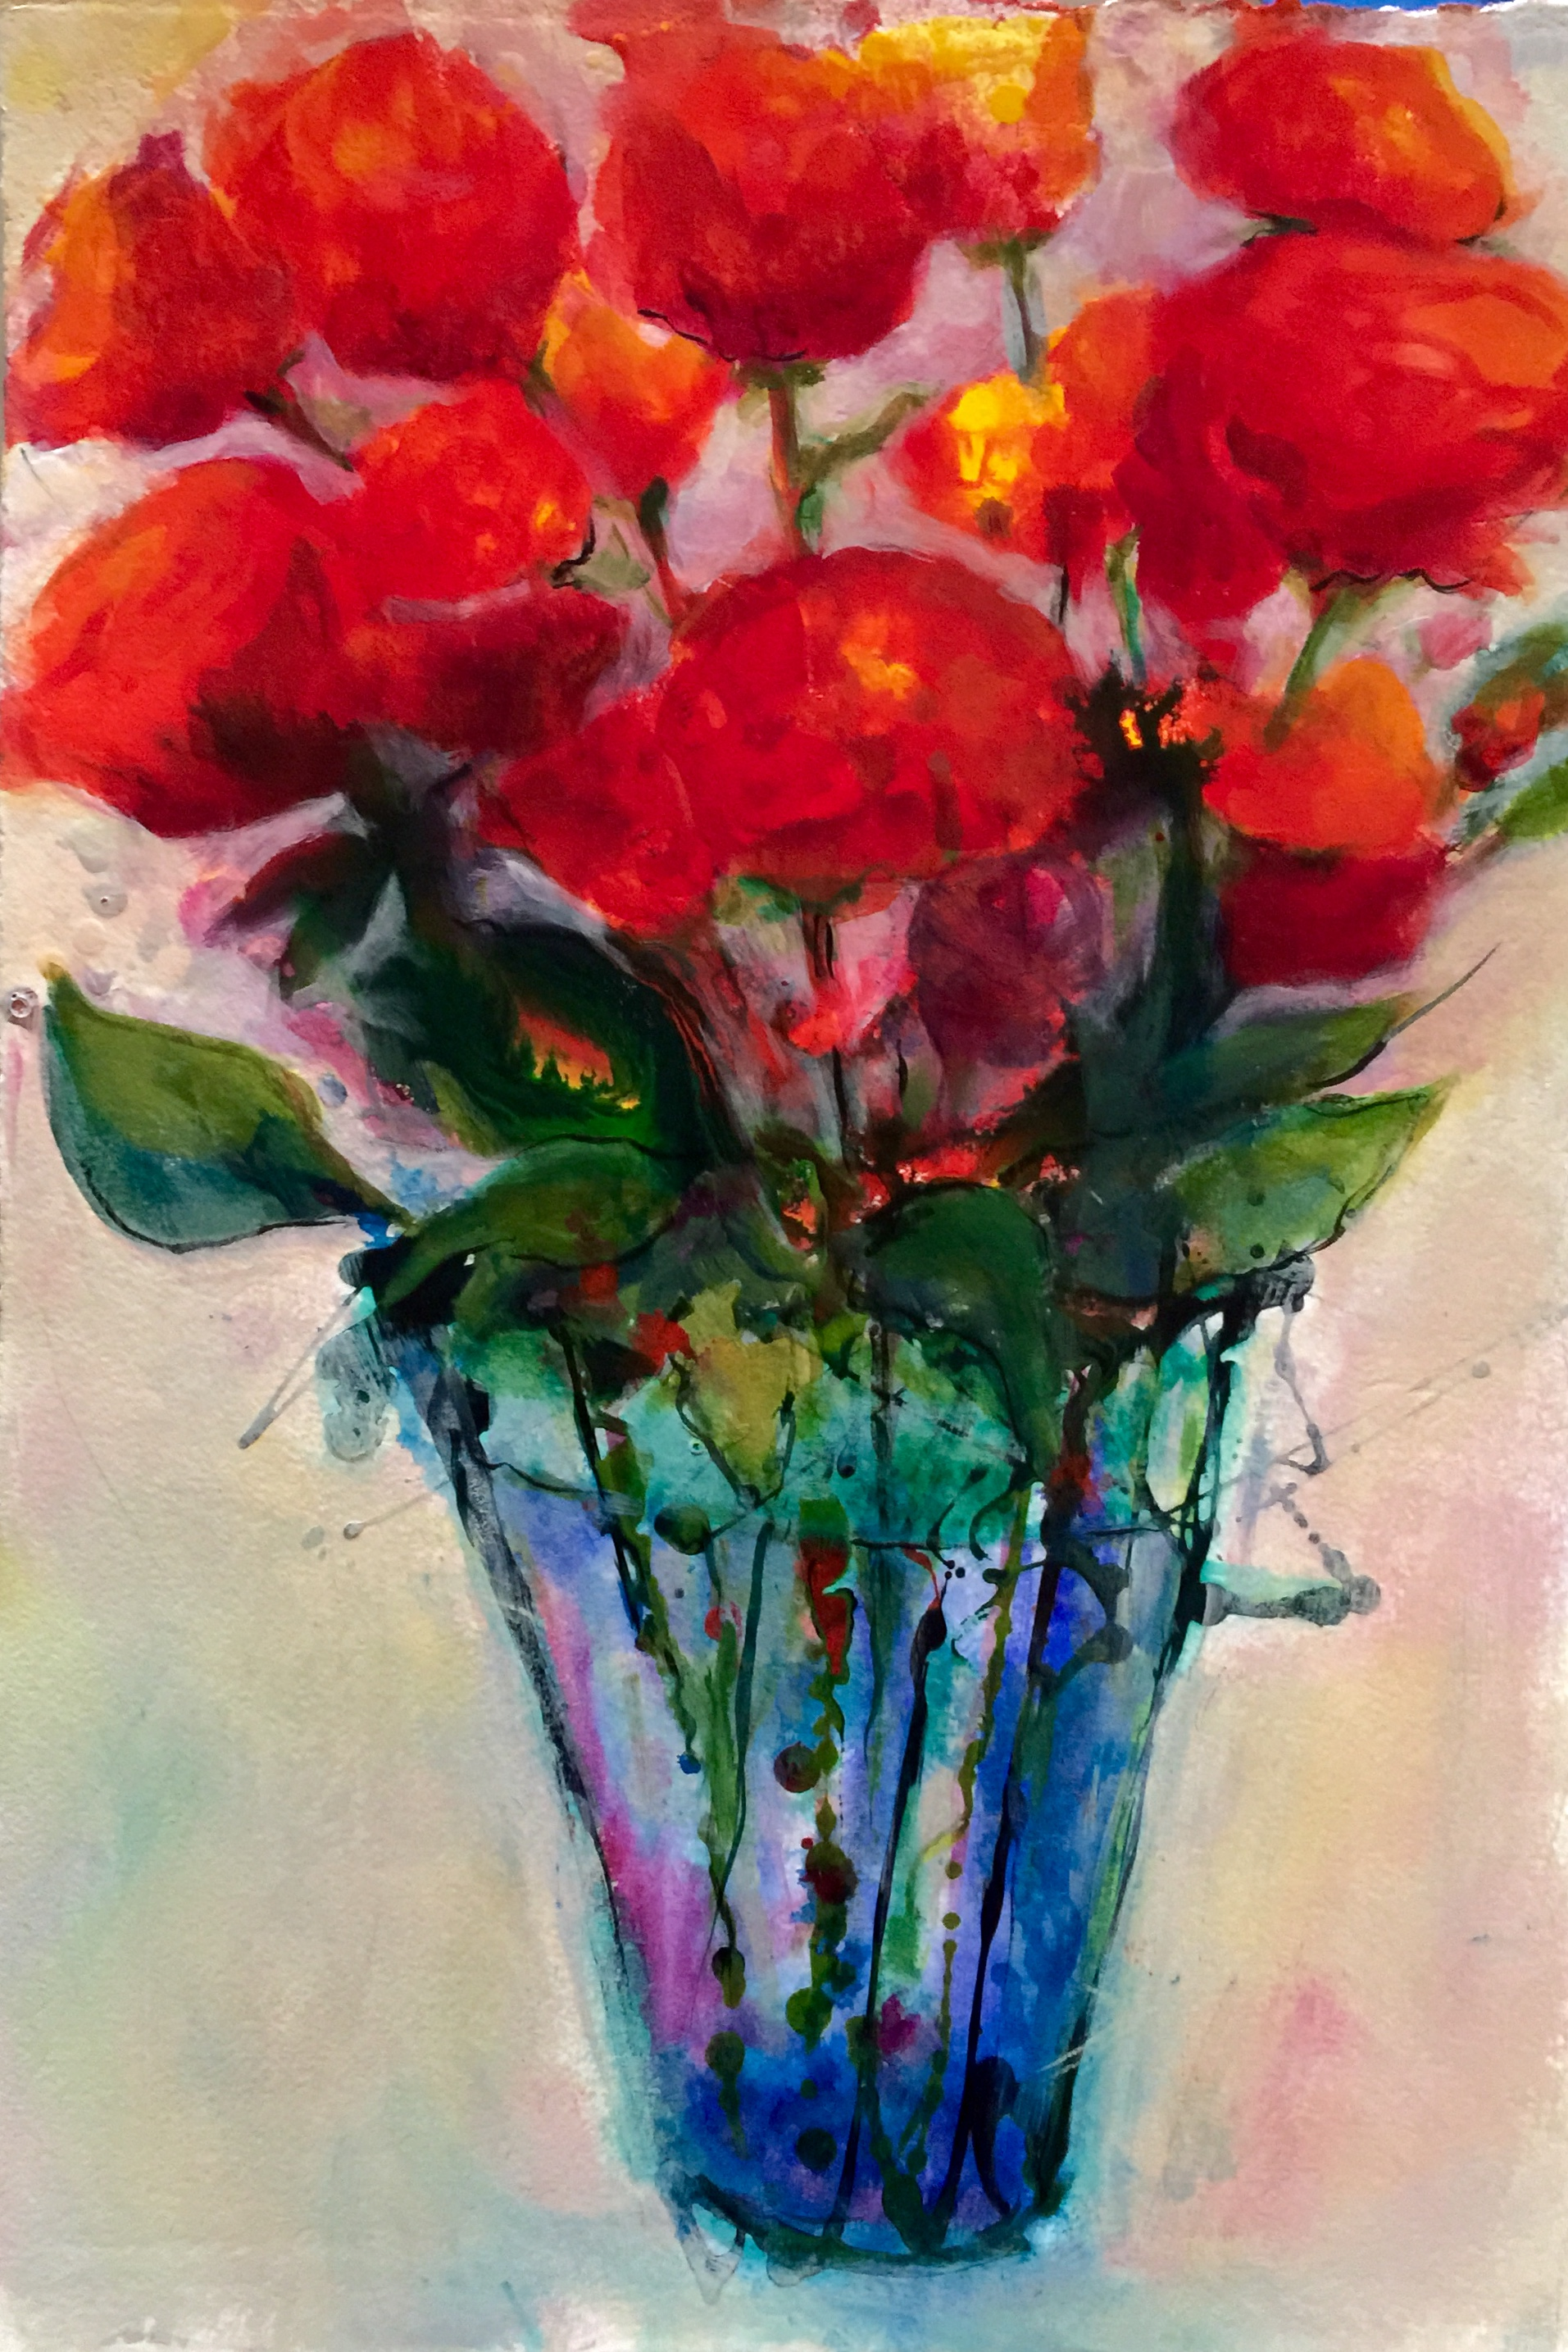 Explosive Roses  Fluid Acrylics on 300 lb paper, 16x22.  Available